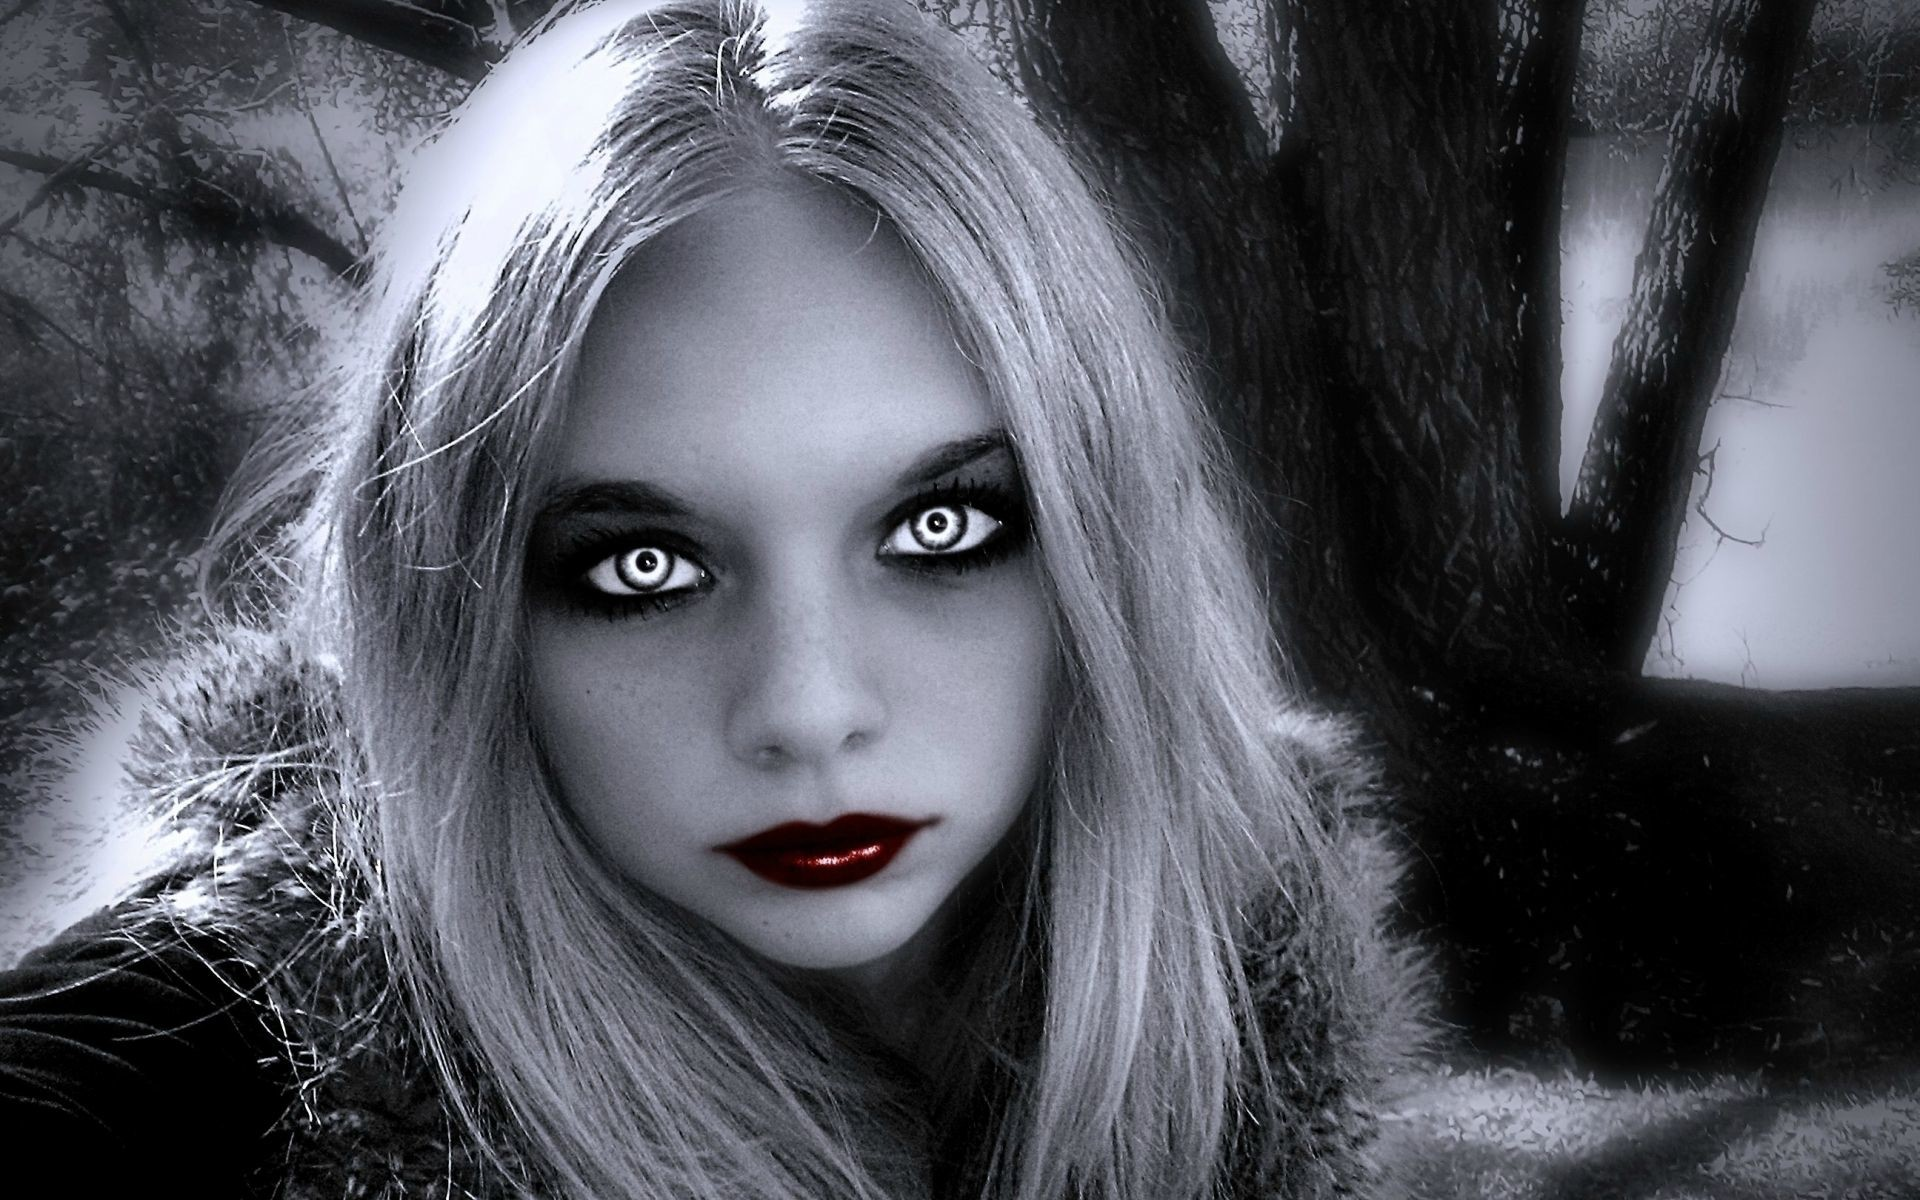 Res: 1920x1200, gothic women fantasy | dark horror gothic fantasy vamire women face eyes  wallpaper background